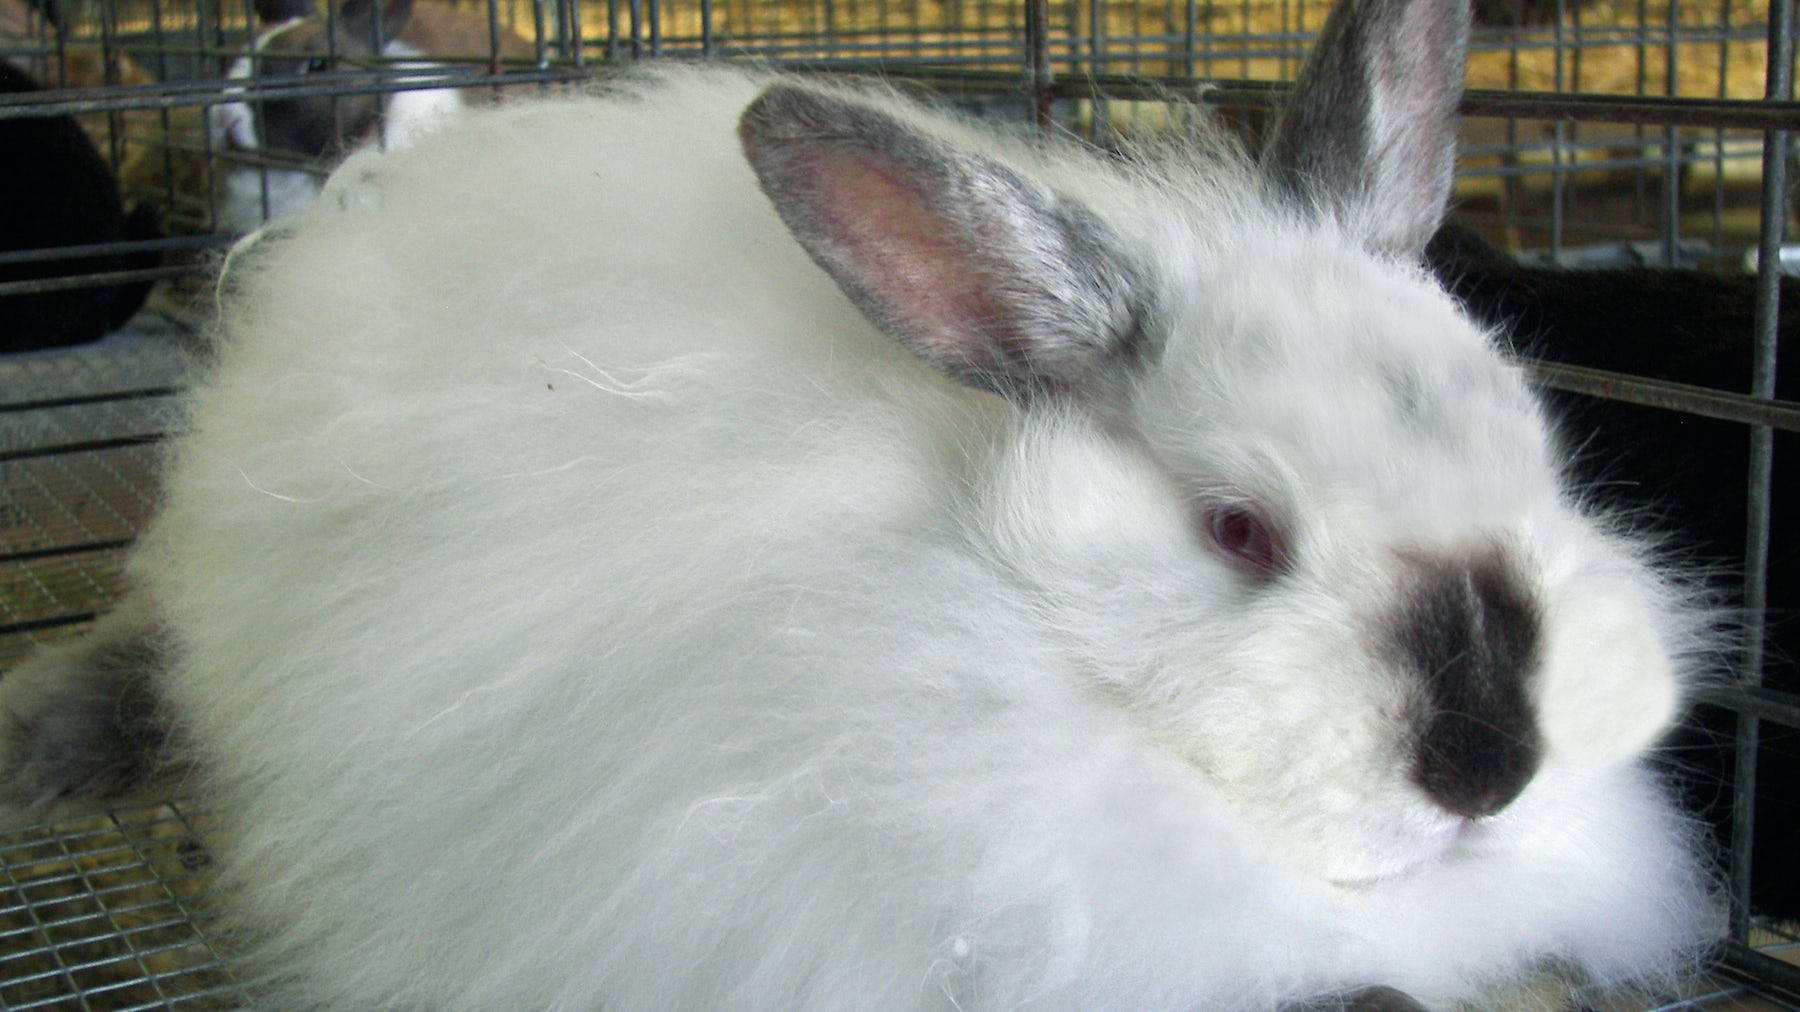 An angora rabbit sits in a cage   Source: Shutterstock